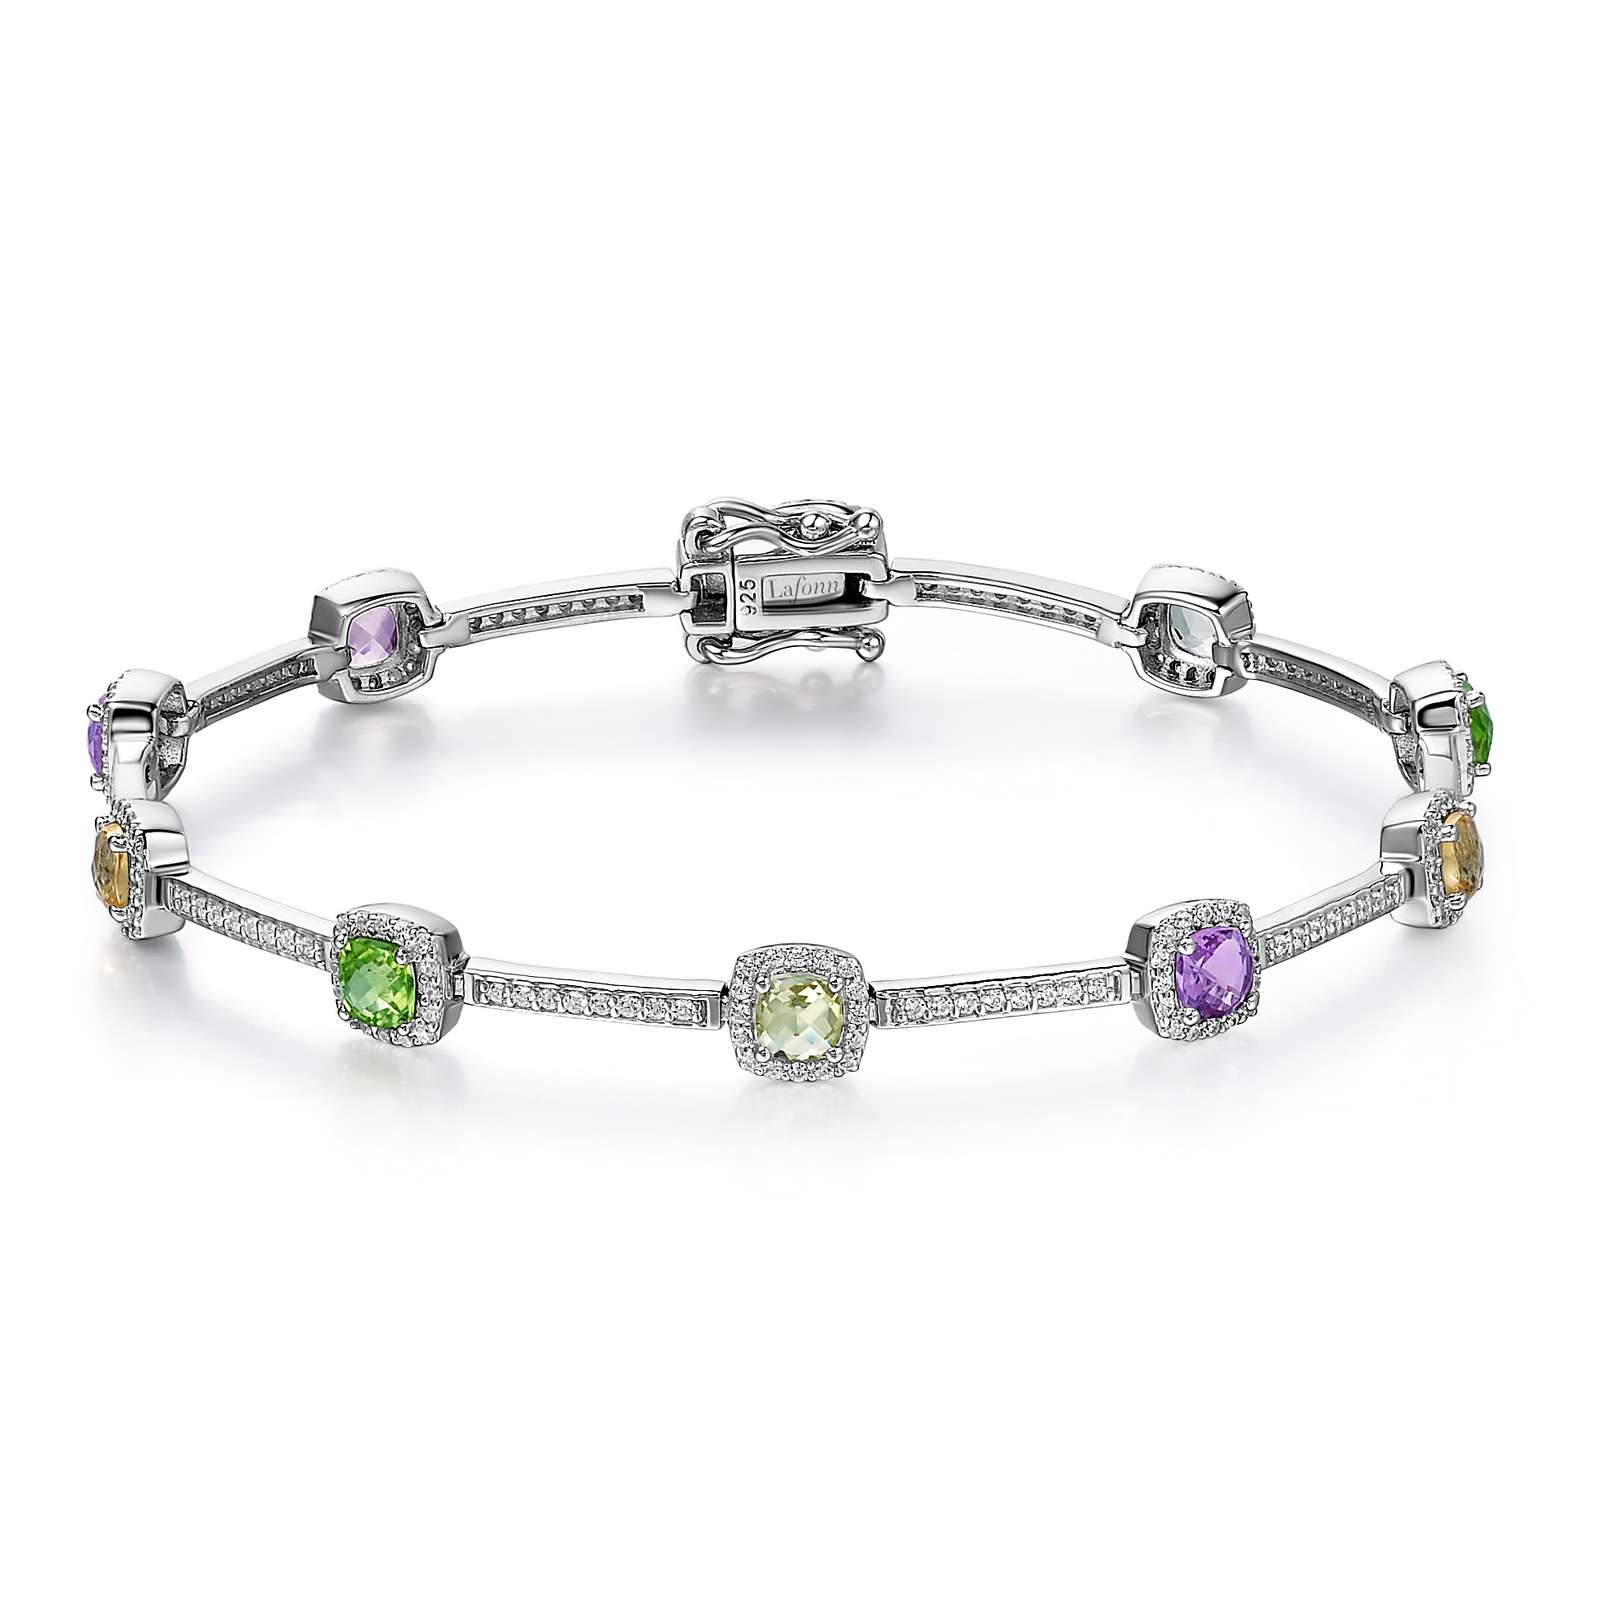 Shop our online store for the best priced bracelets. We carry a wide variety of bracelets in gold, silver and platinum with or without diamonds and gemstones. See our online store or stop into our showroom in Jensen Beach, Florida.